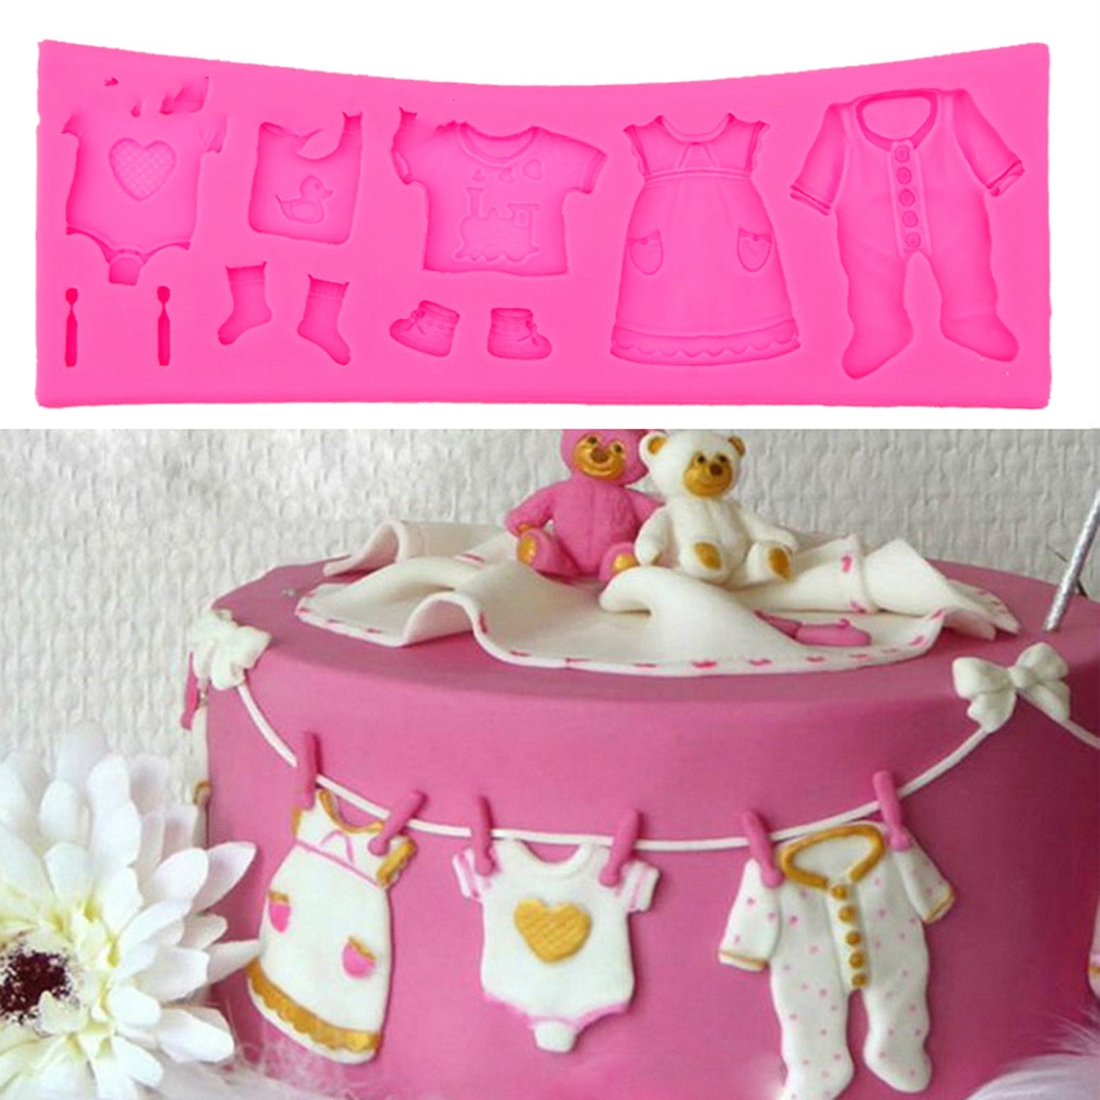 2 PCS Baking Mold Baby Shoes Fondant Cake Mold Kid Clothes Silicone DIY Chocolate West Point Mold